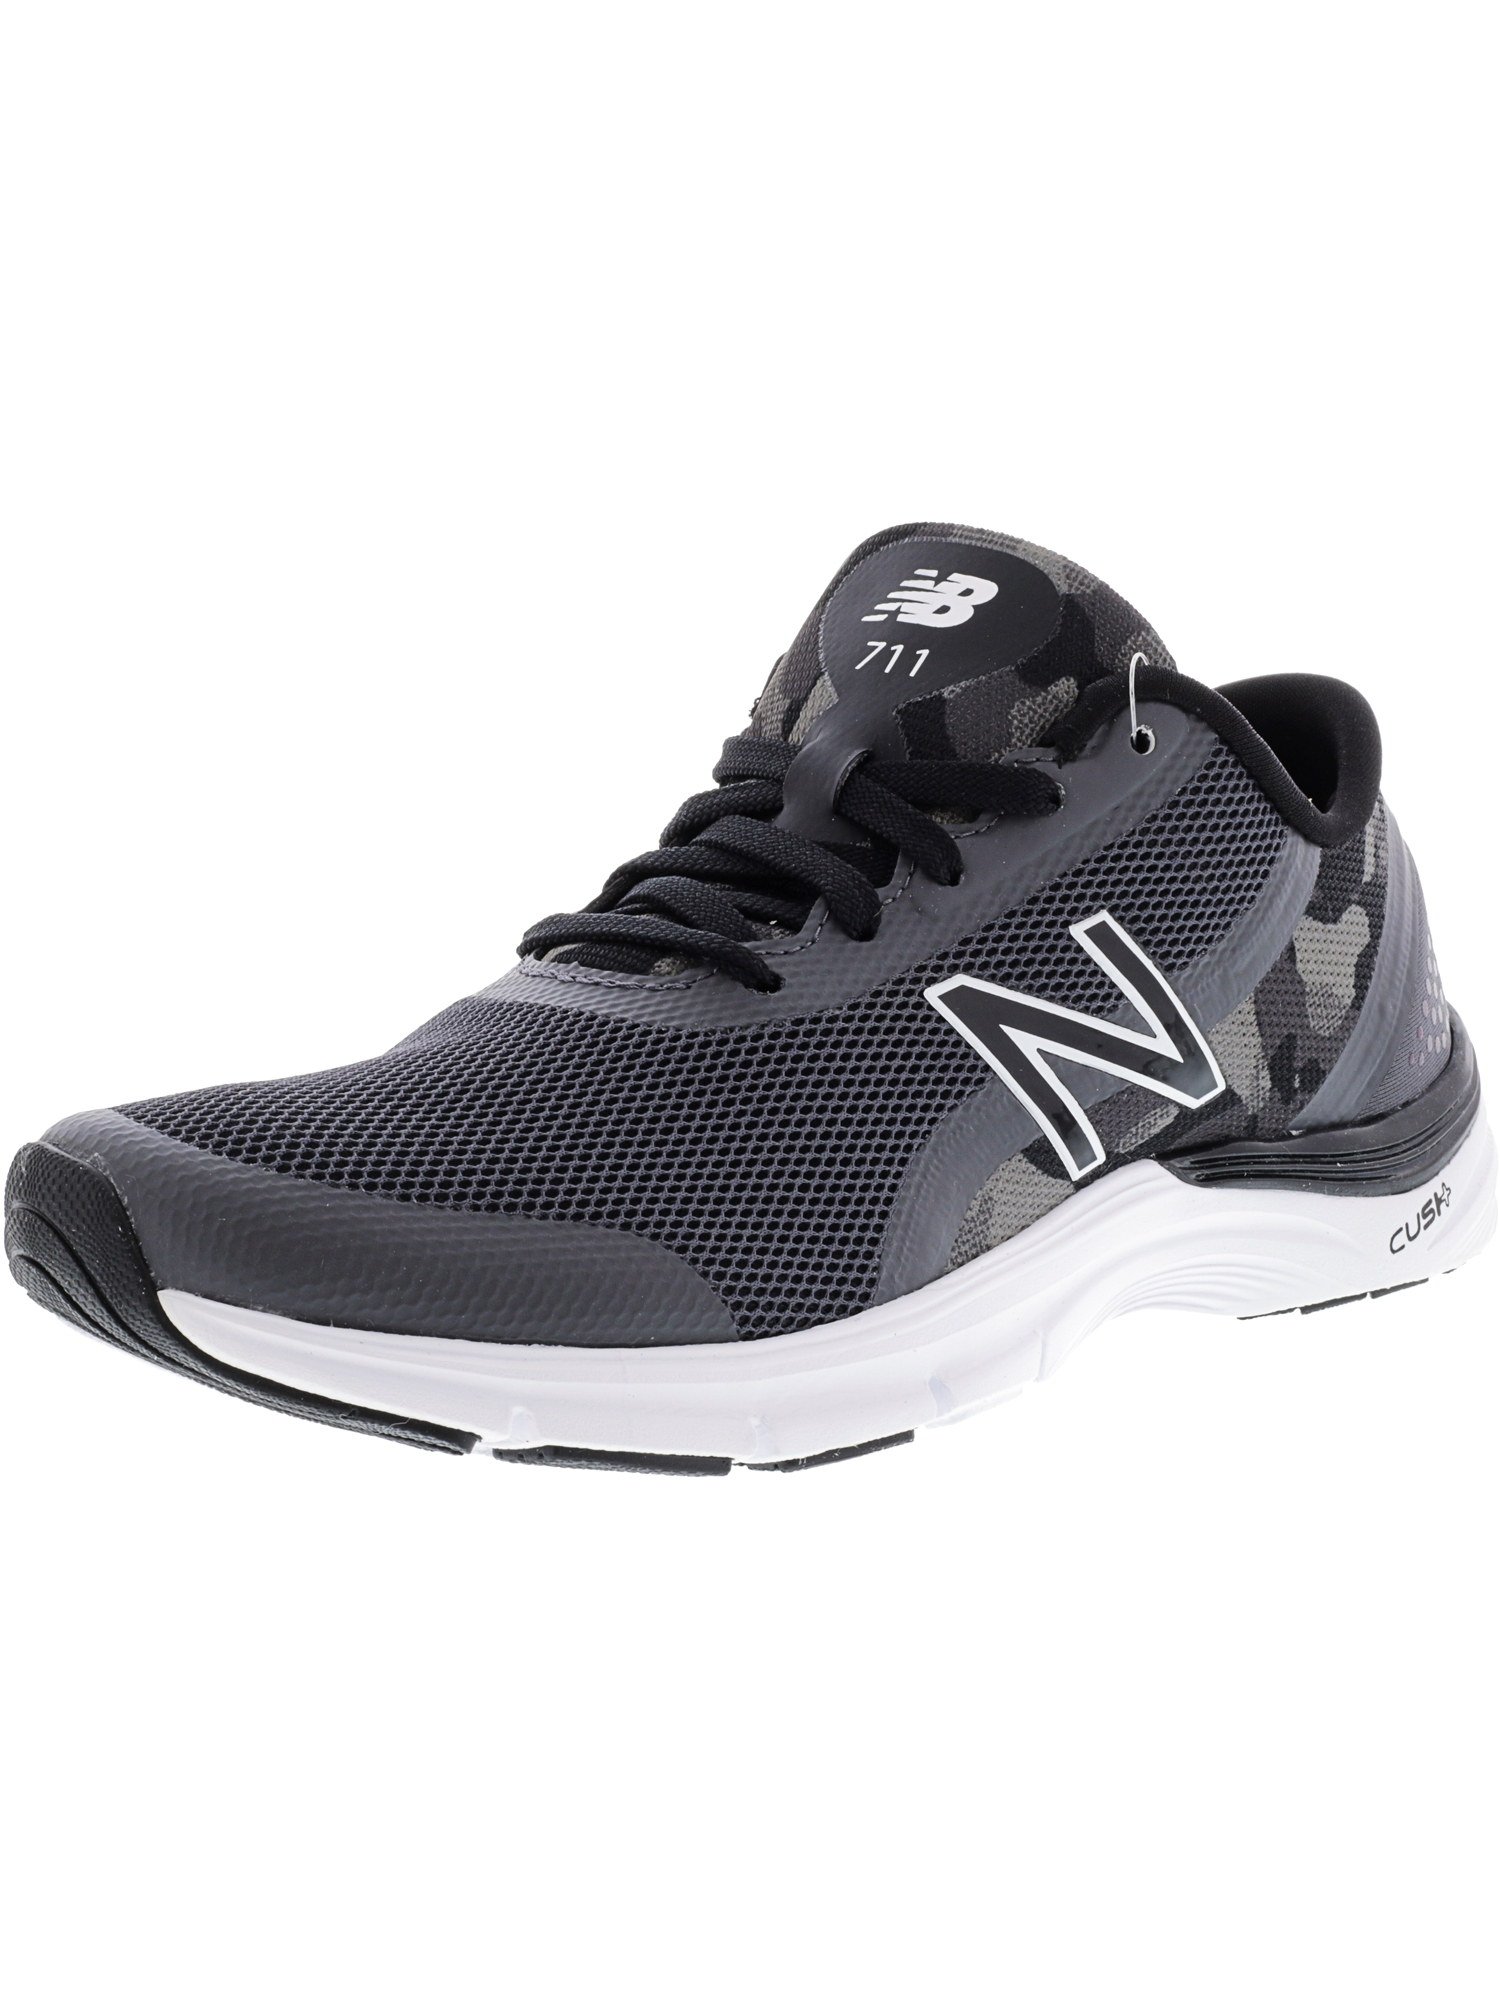 New Balance Women's Wx711 Cg3 Ankle-High Mesh Running Shoe - 11M